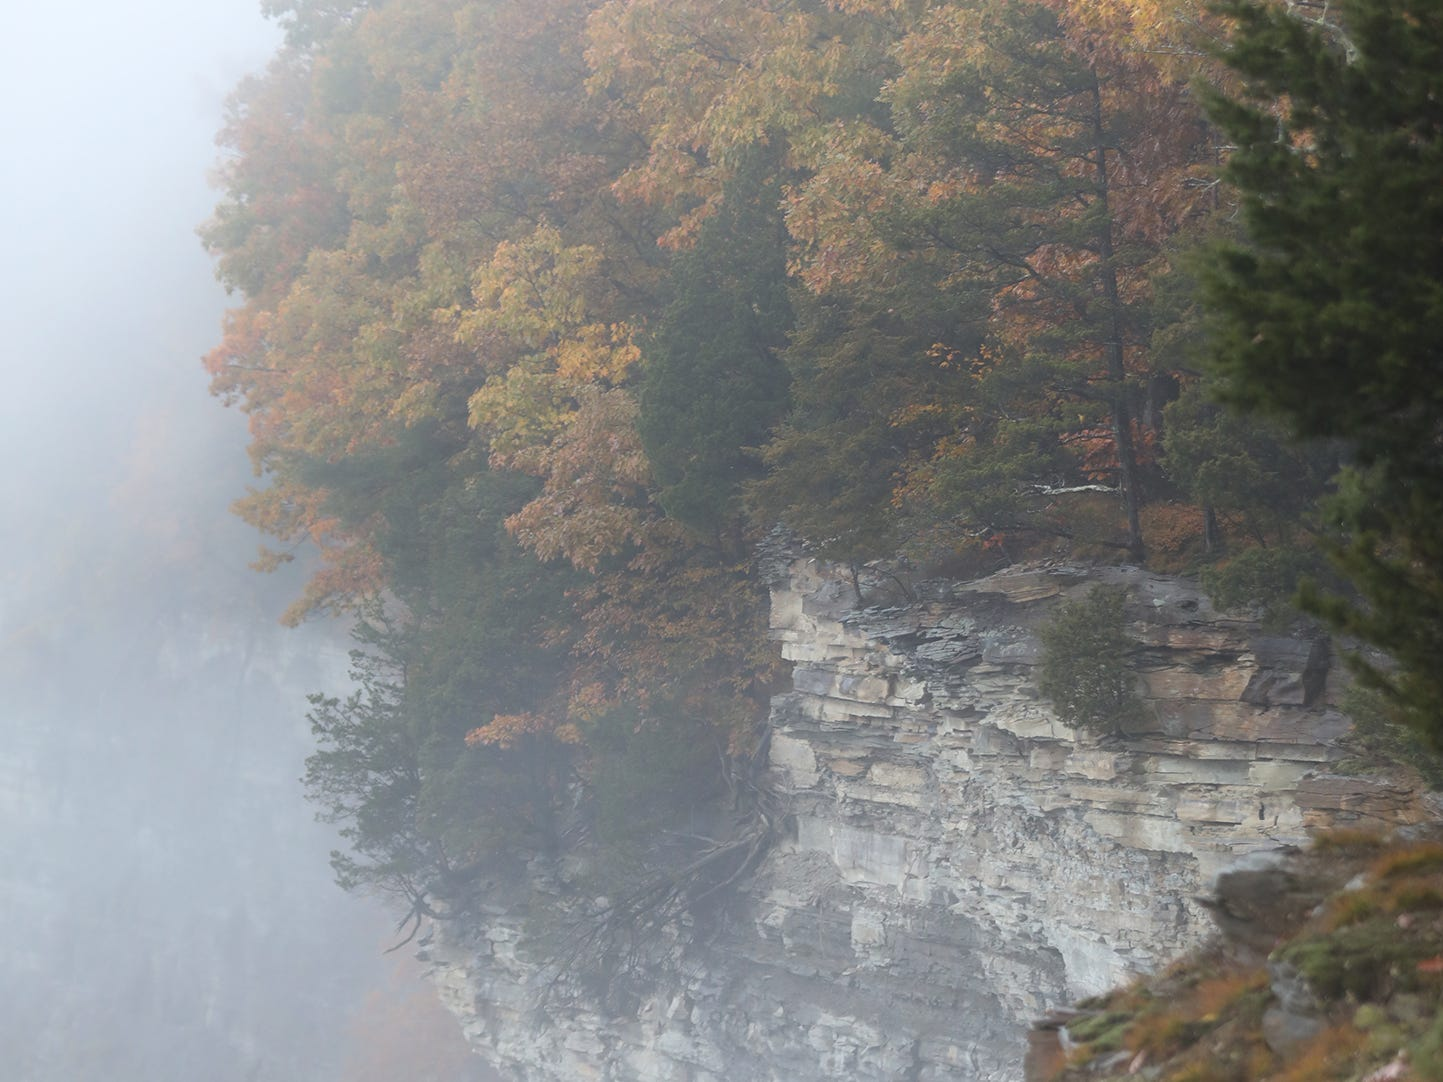 Pines trees break up the fall colors at Letchworth State Park.